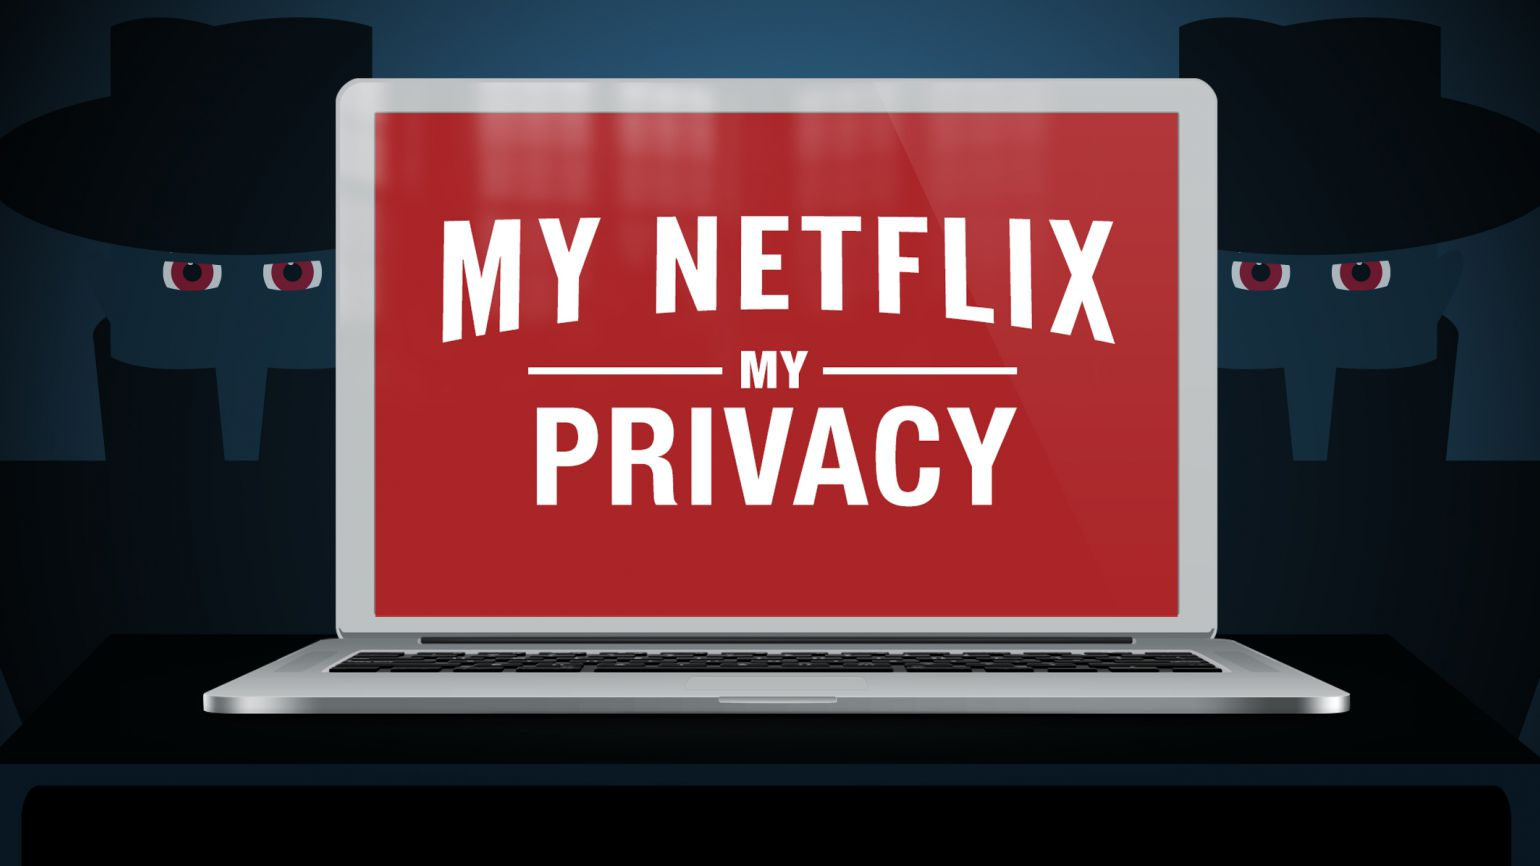 My Netflix my privacy